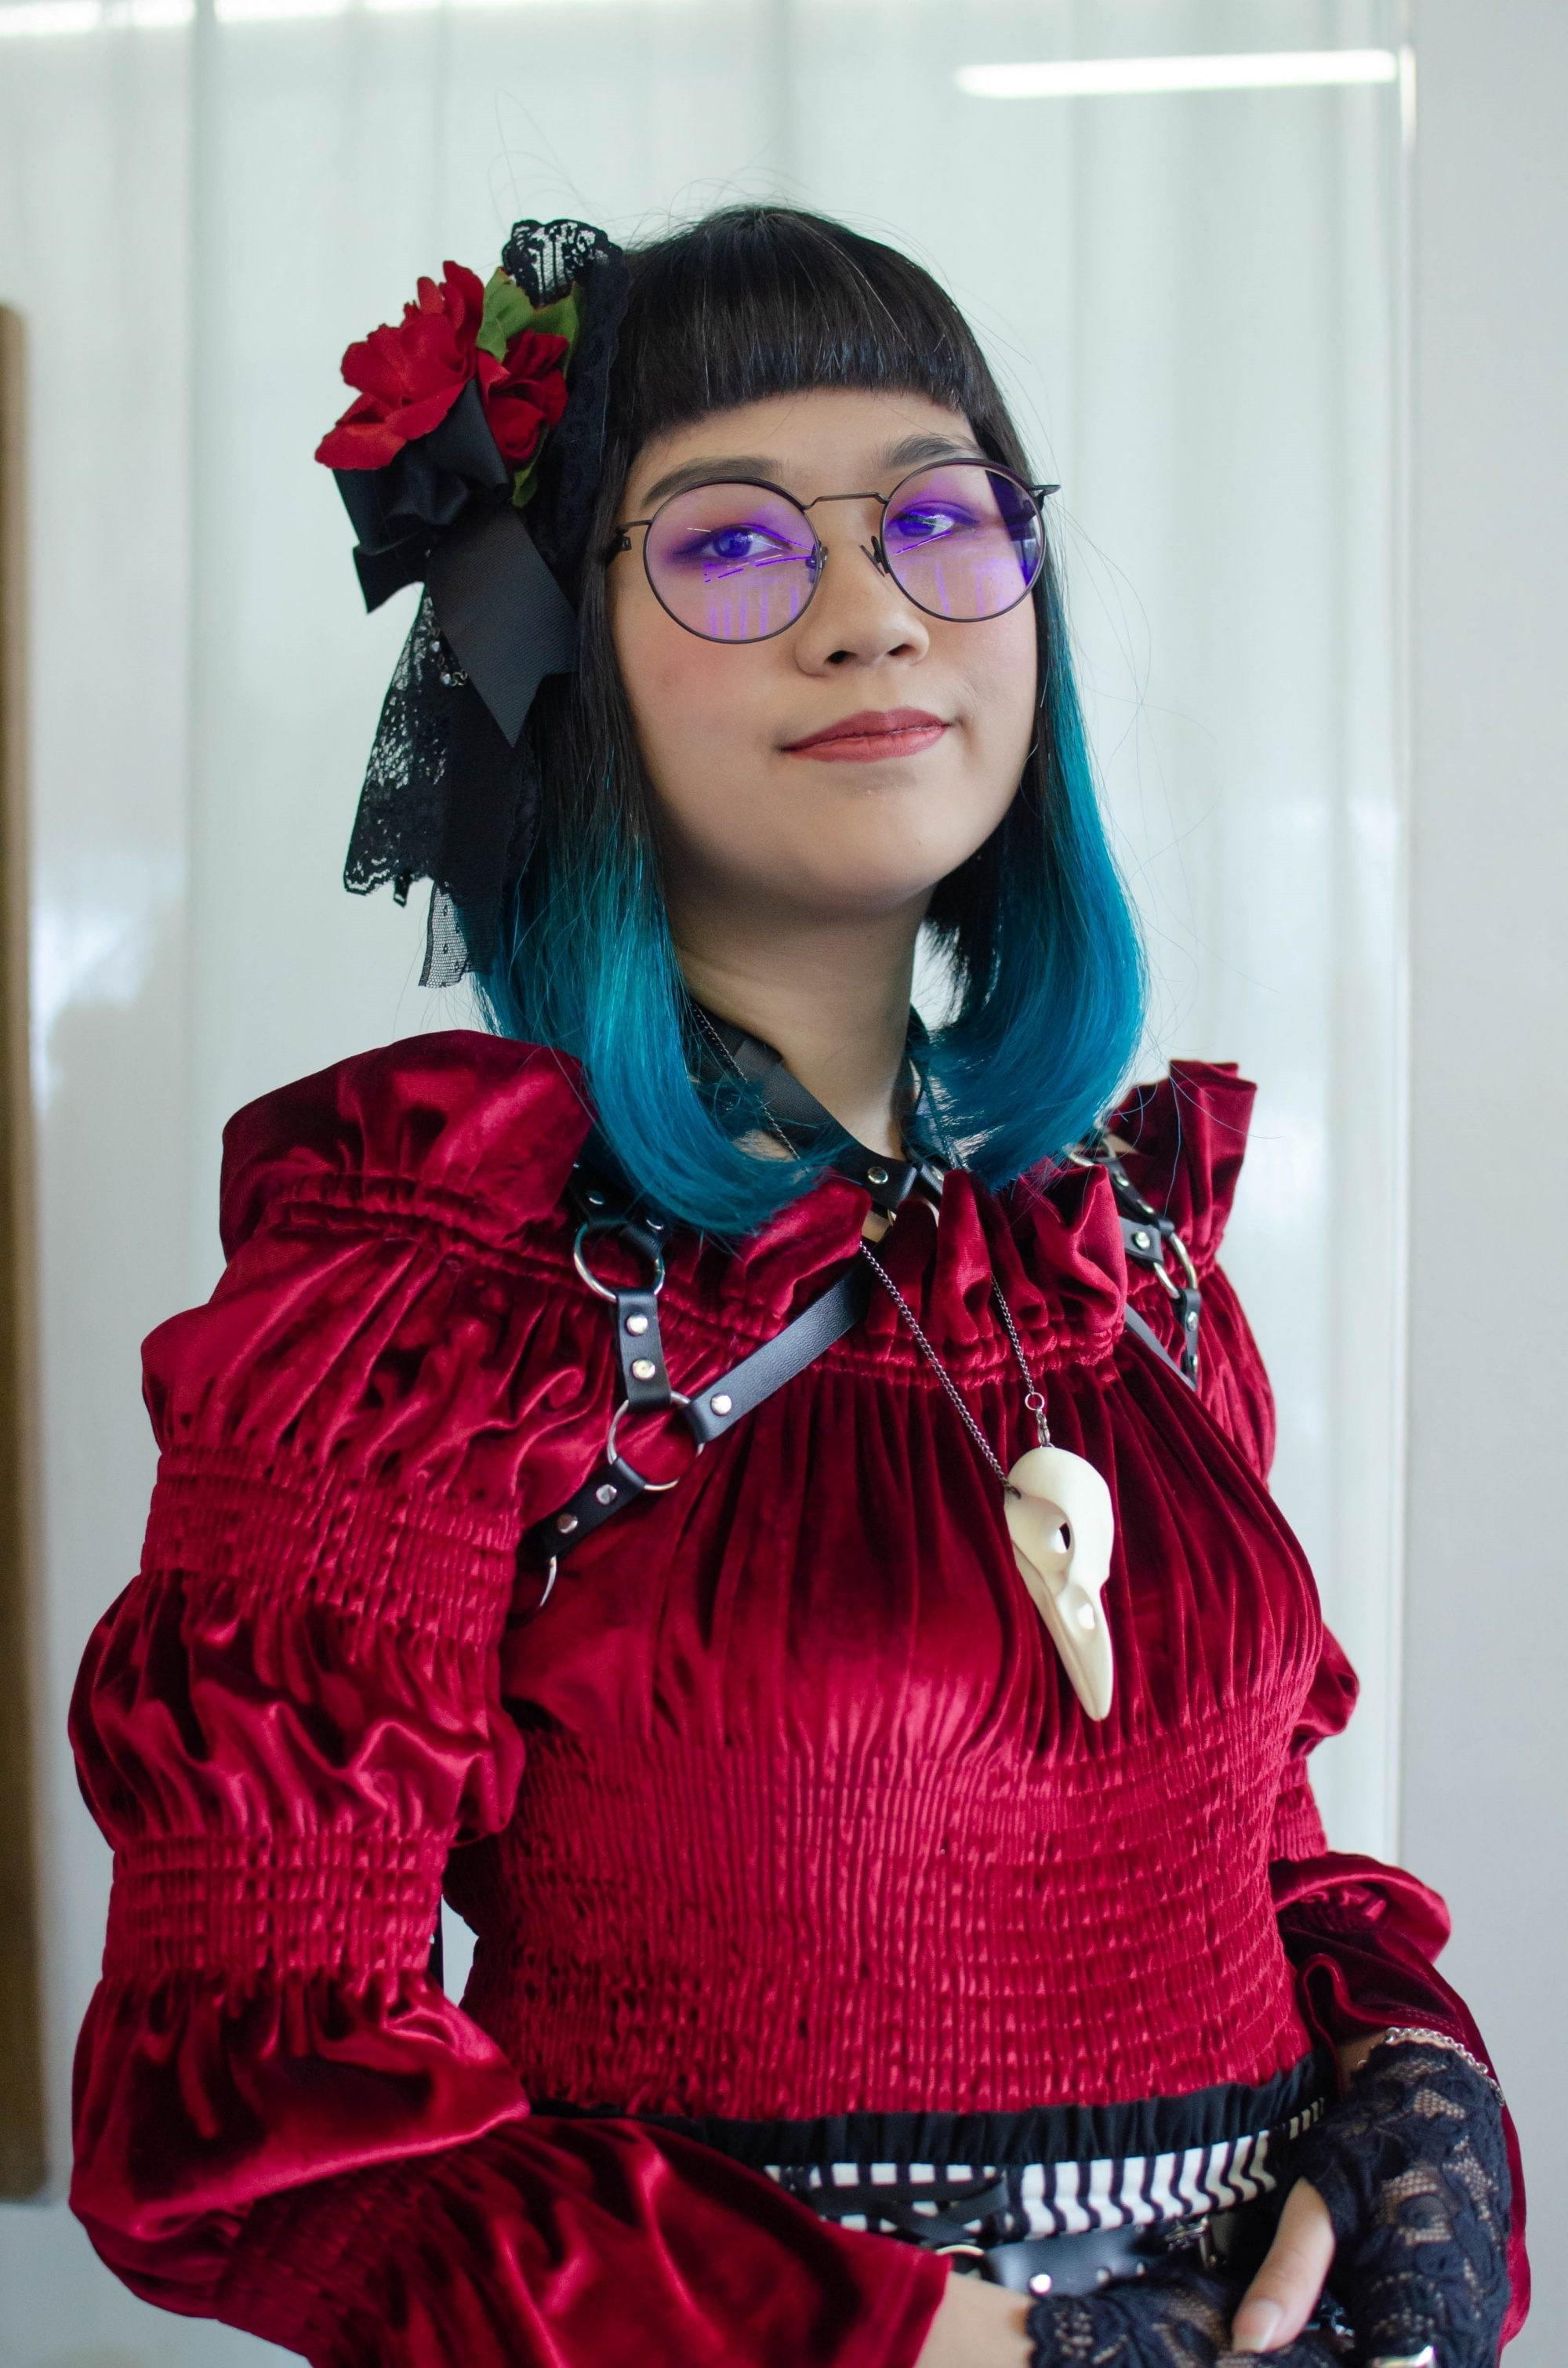 Asian woman in a red doll costume with dip dyed blue hair